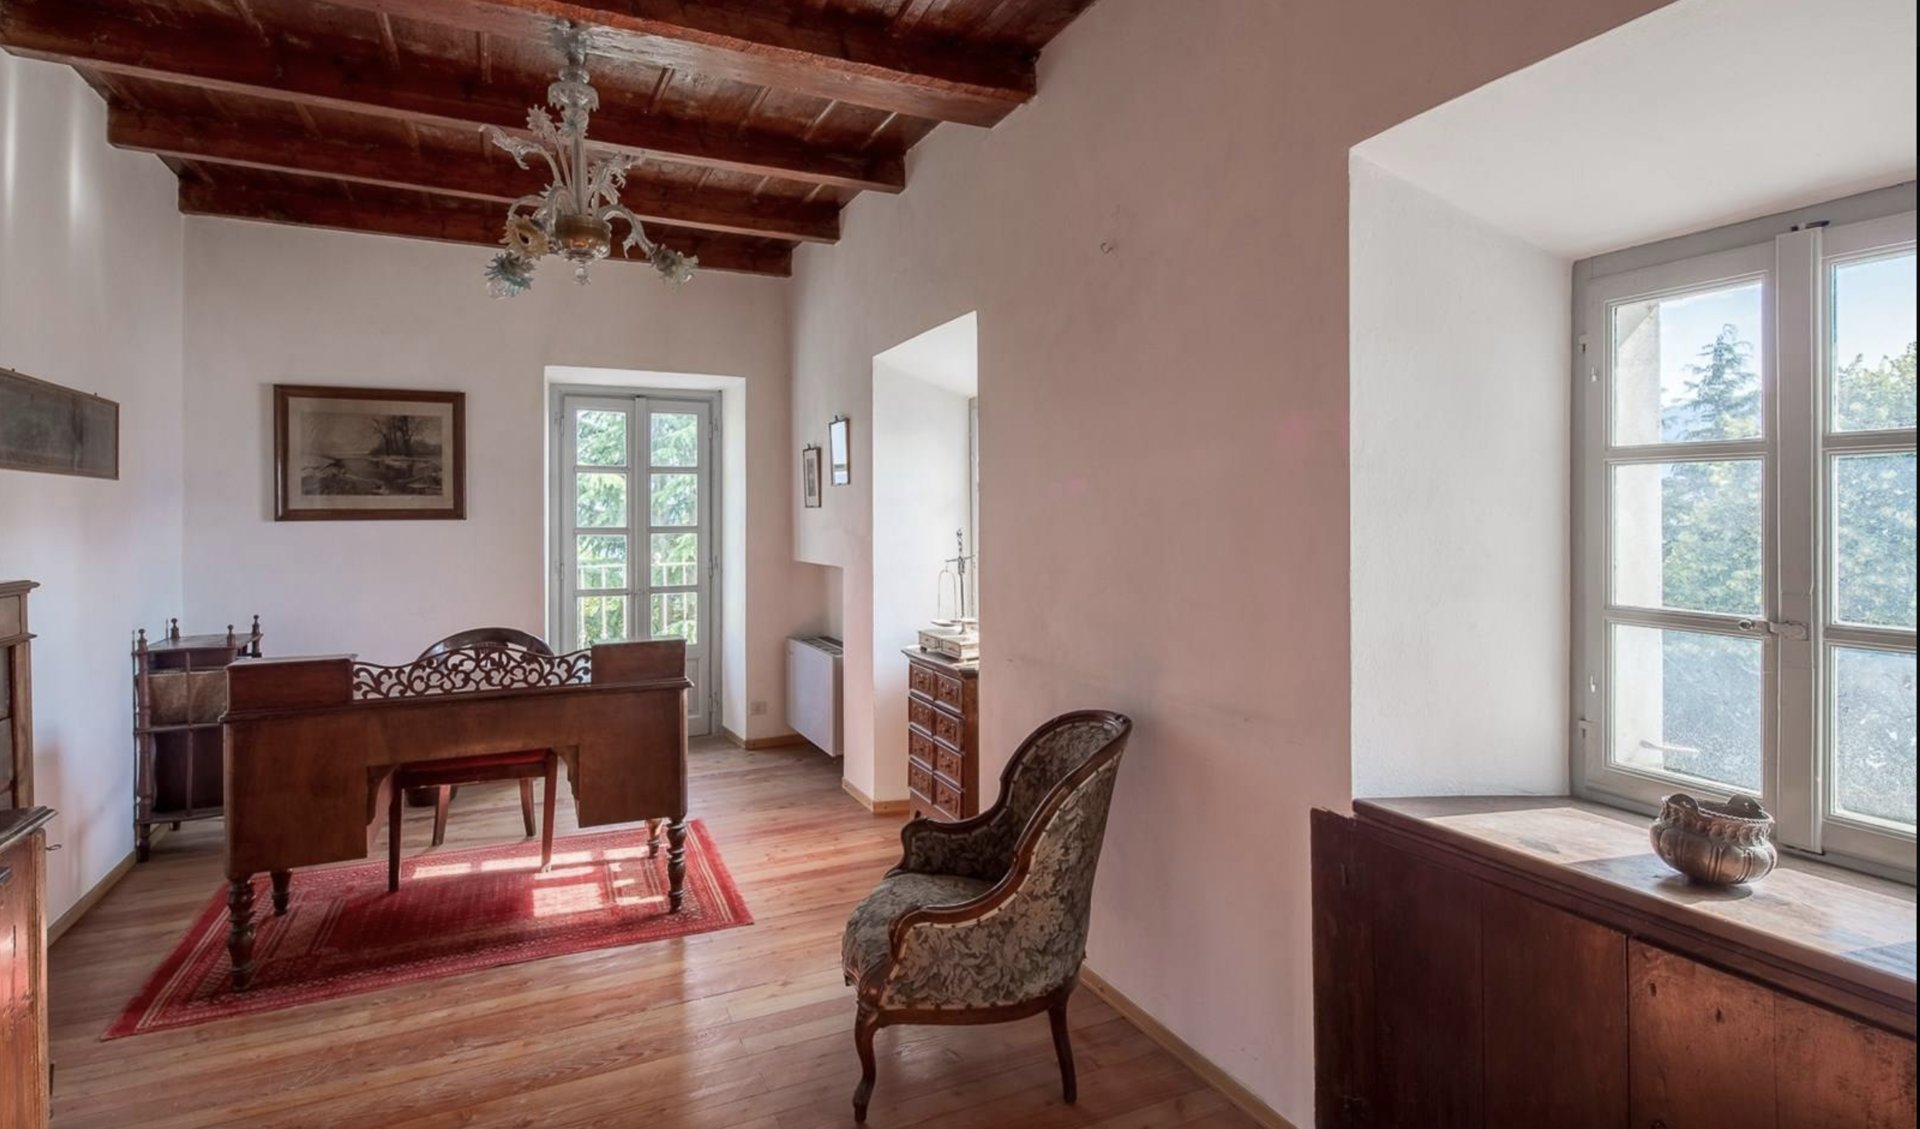 Historic property former convent for sale in Orta - study